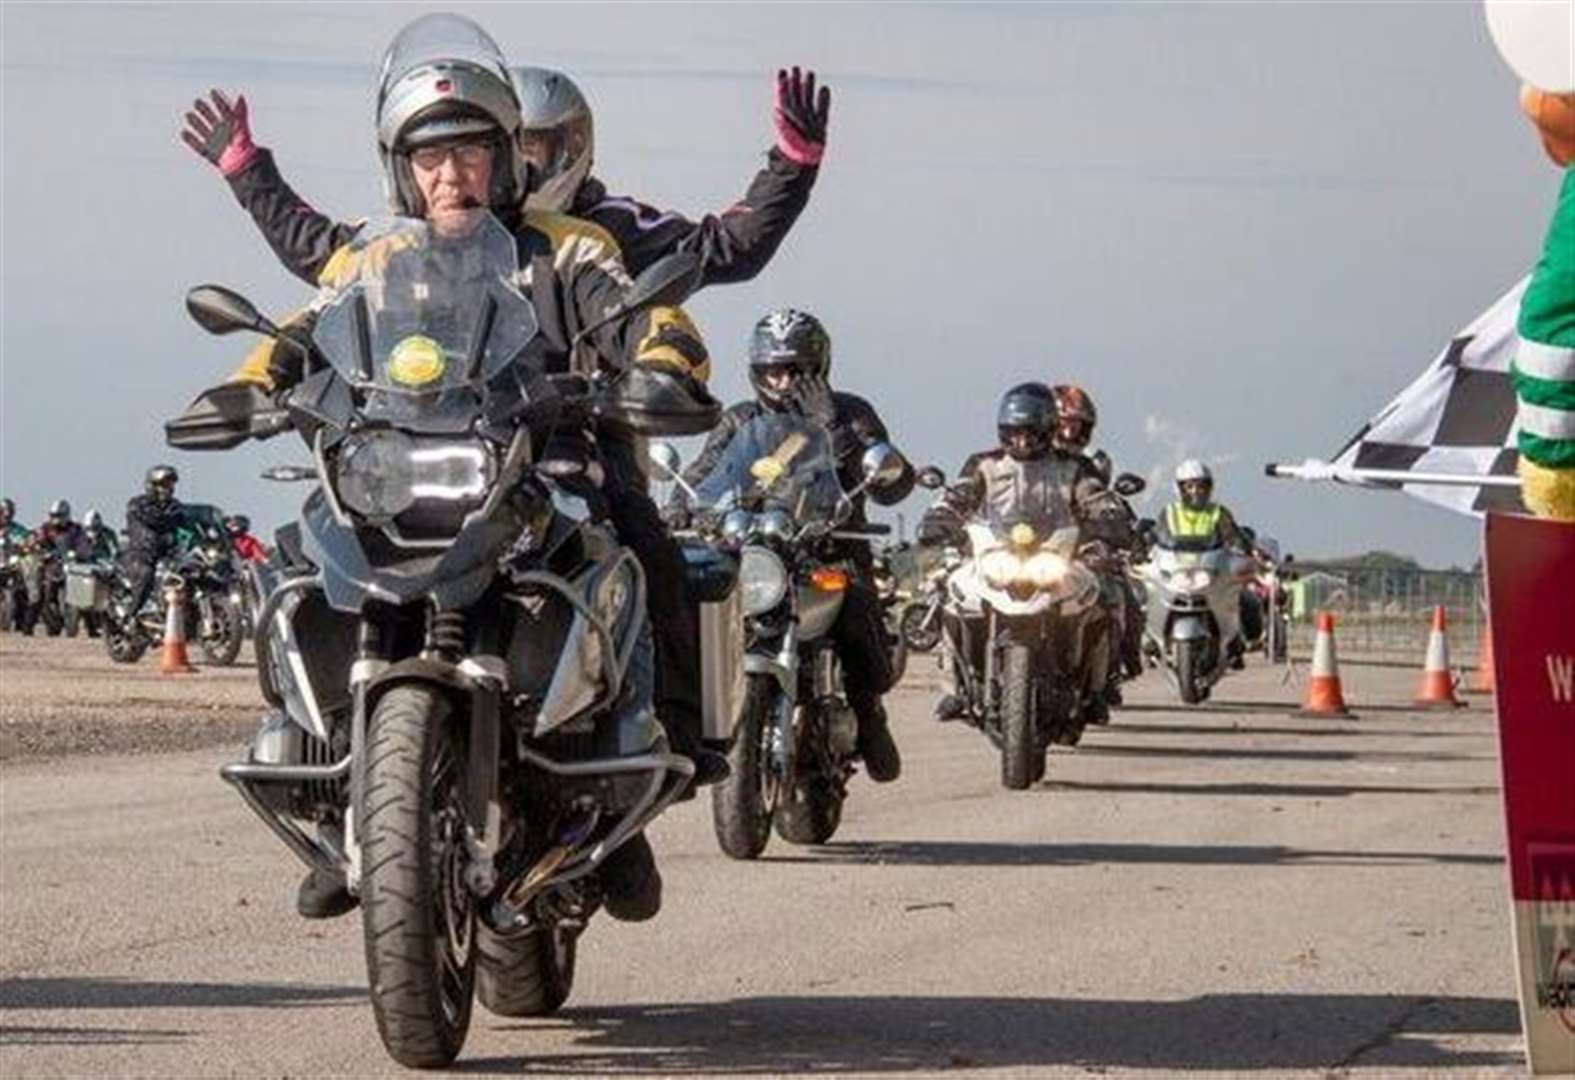 Bikers wanted to take part in charity ride for Lincs & Notts Air Ambulance